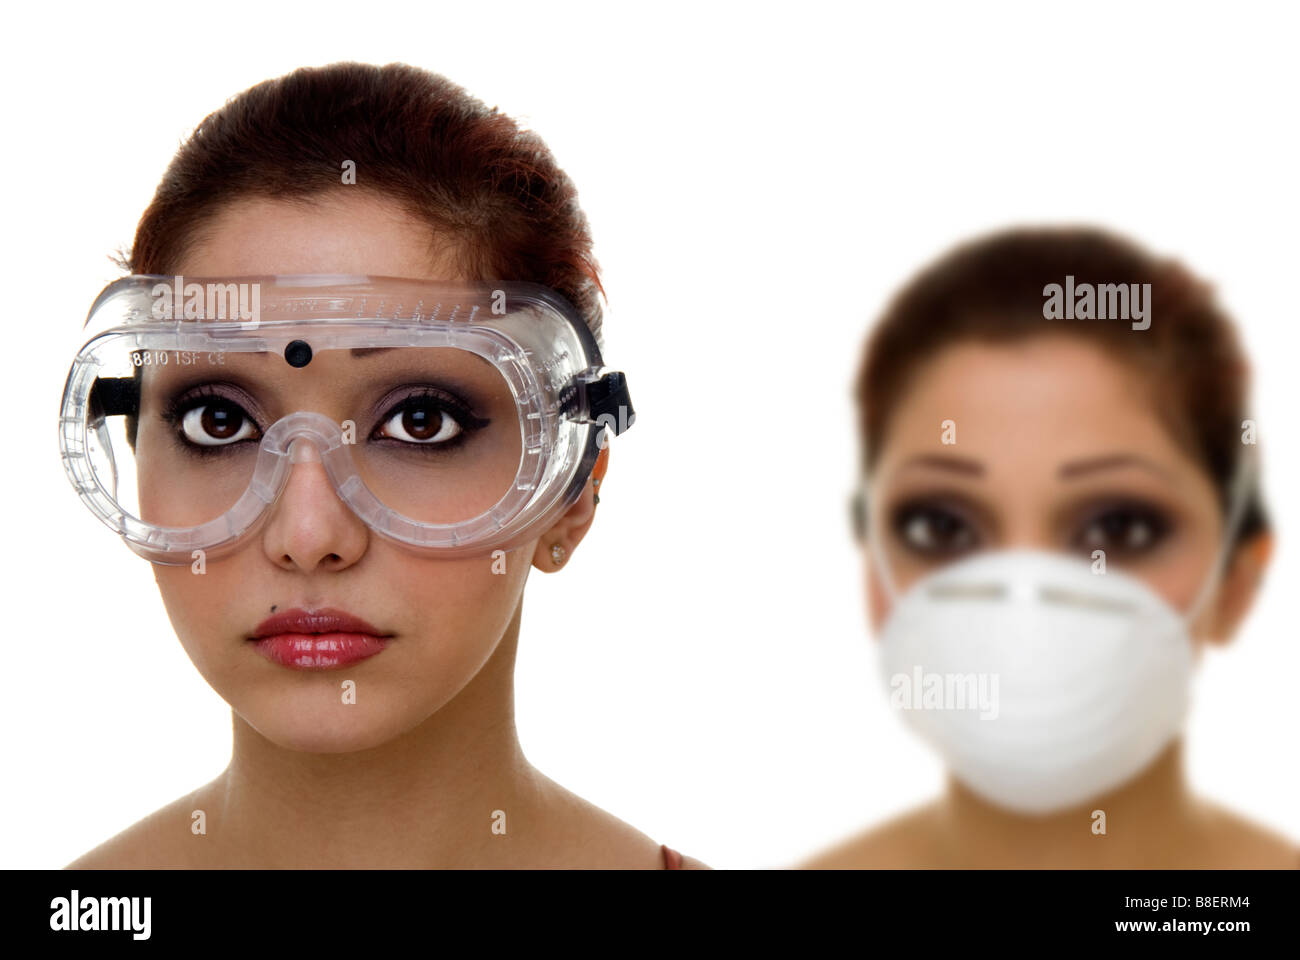 6f6b15d452 women wearing safety goggles and dust mask Stock Photo: 22453540 - Alamy